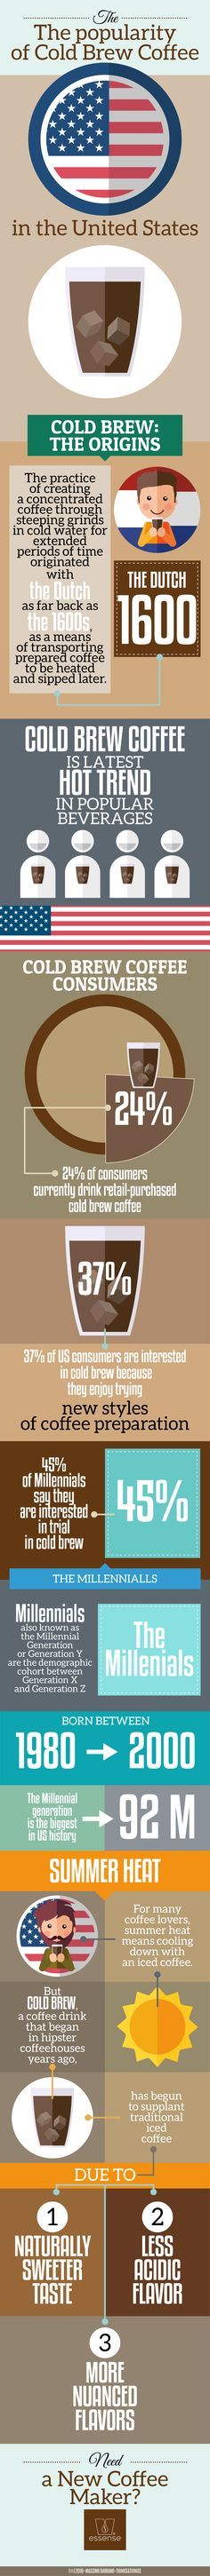 Infographic: Popularity of cold brew coffee in USA